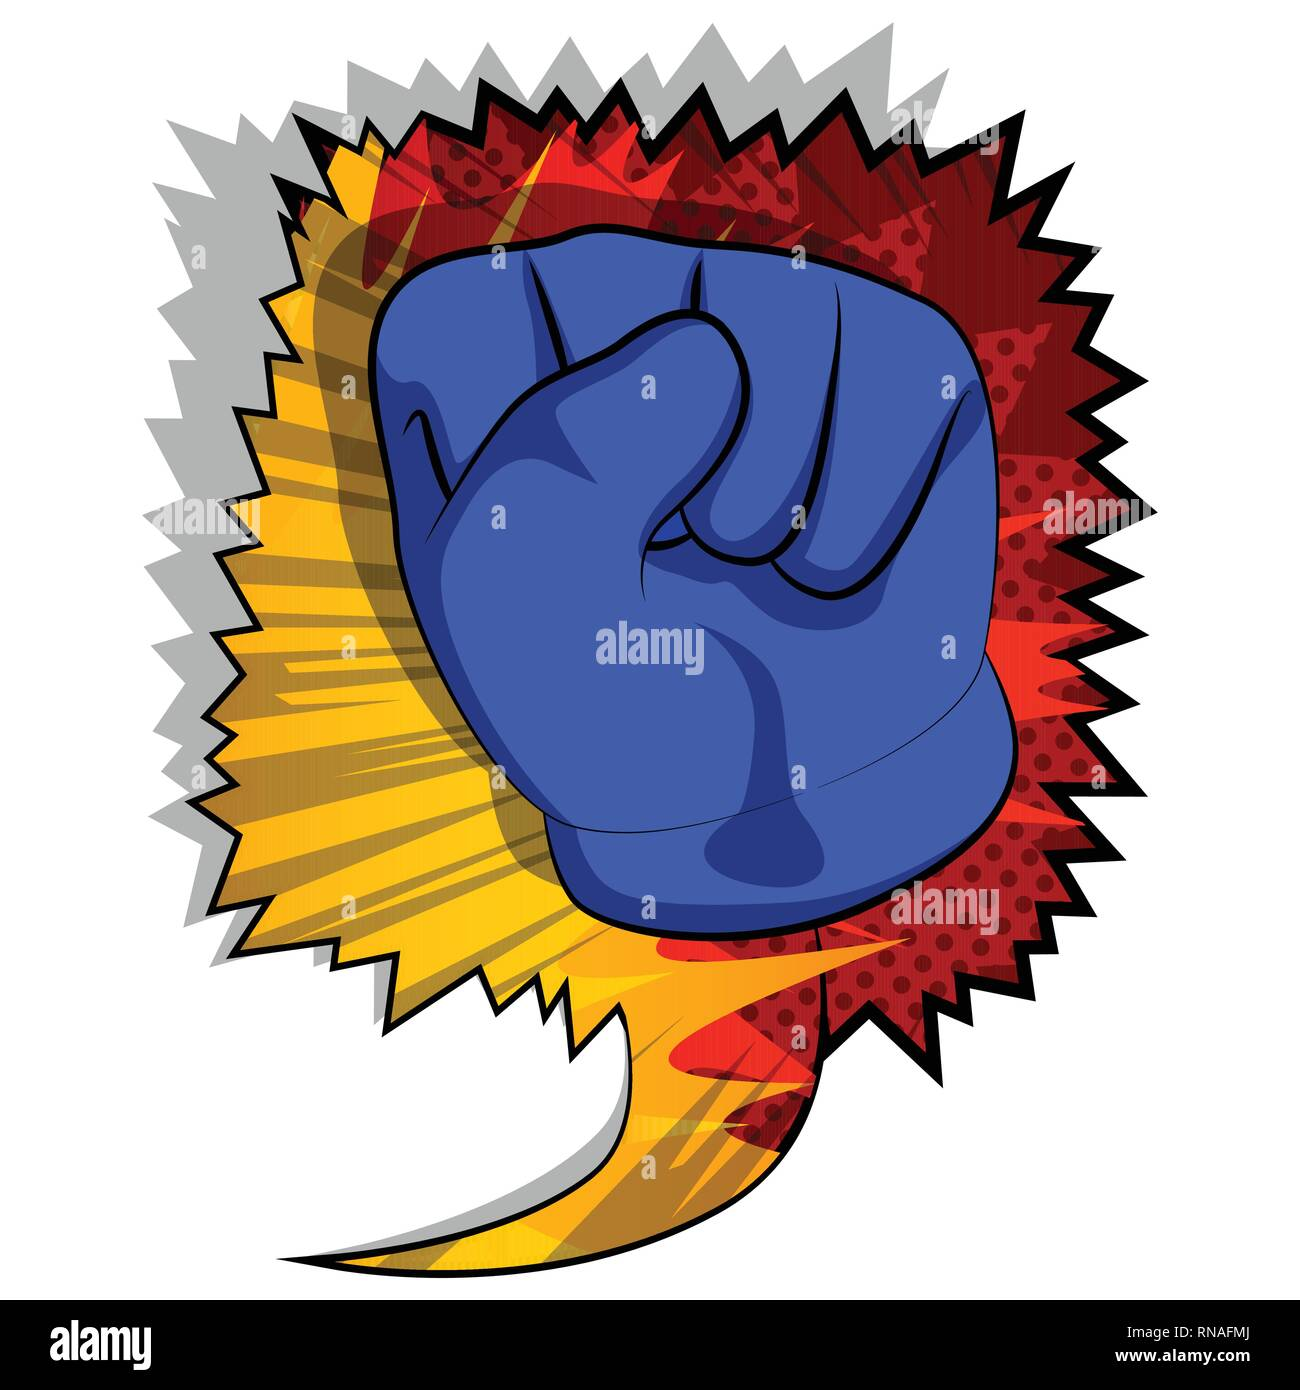 Vector cartoon hand making power to the people fist gesture. Illustrated hand sign on comic book background. - Stock Vector